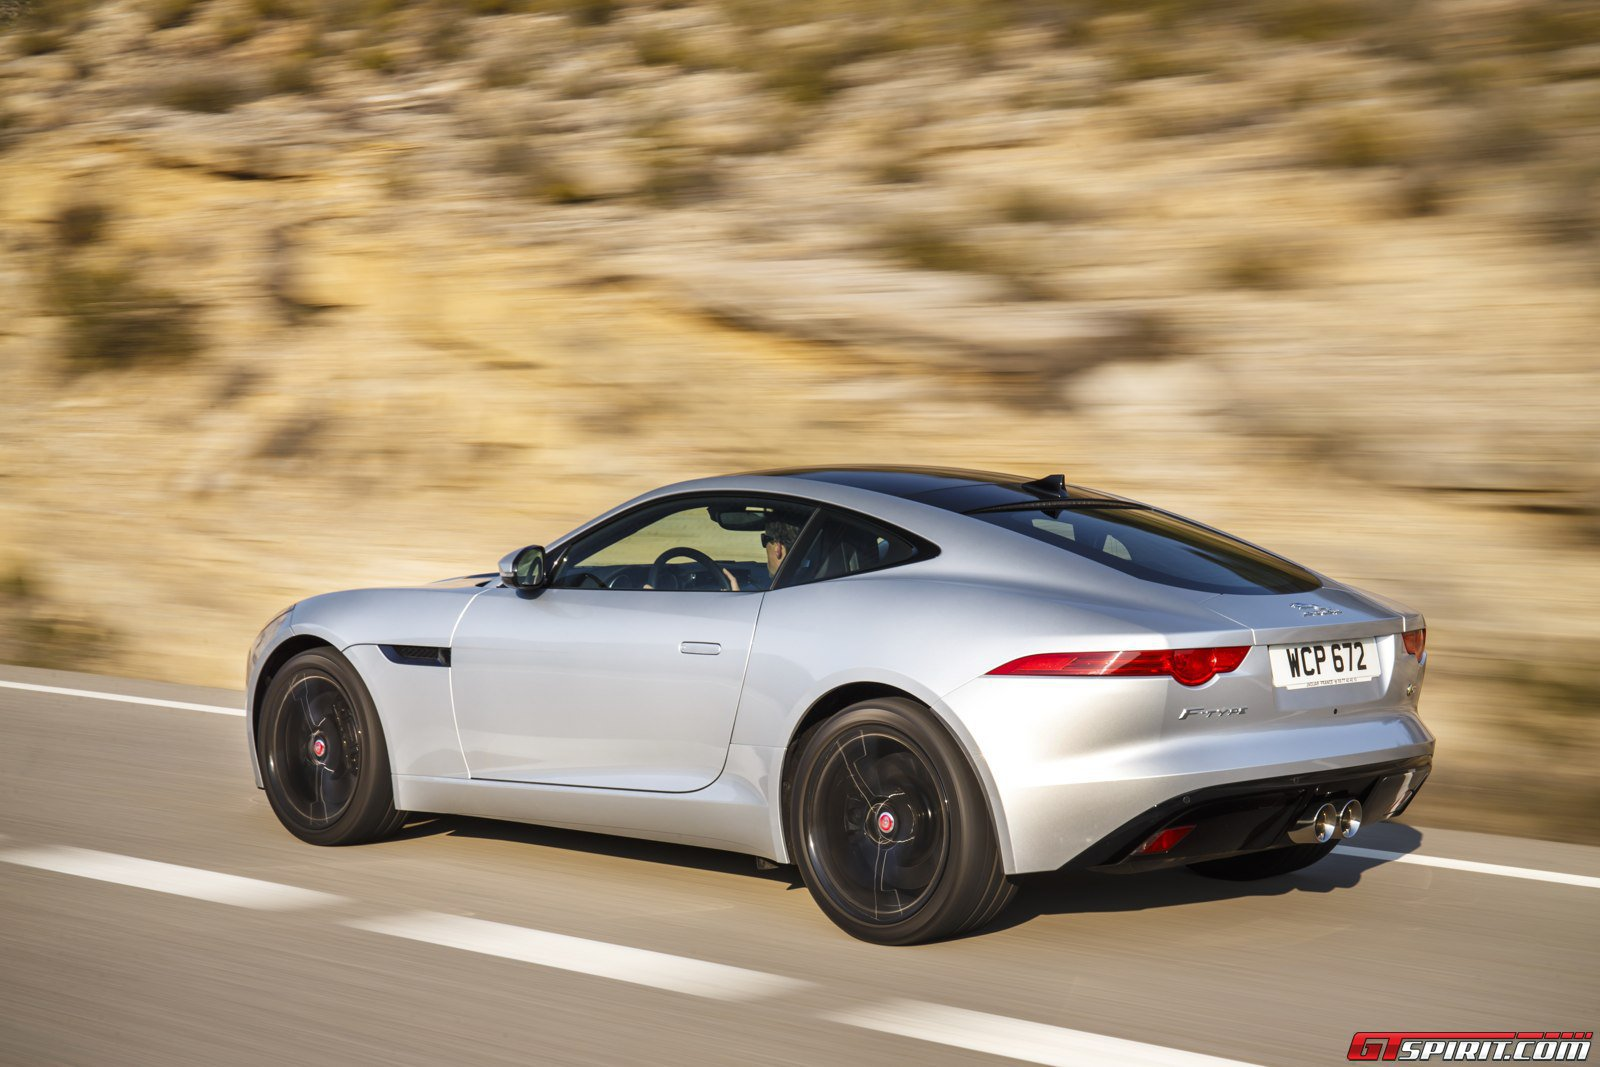 2014 jaguar f type v6s coupe vs f type r coupe review gtspirit. Black Bedroom Furniture Sets. Home Design Ideas